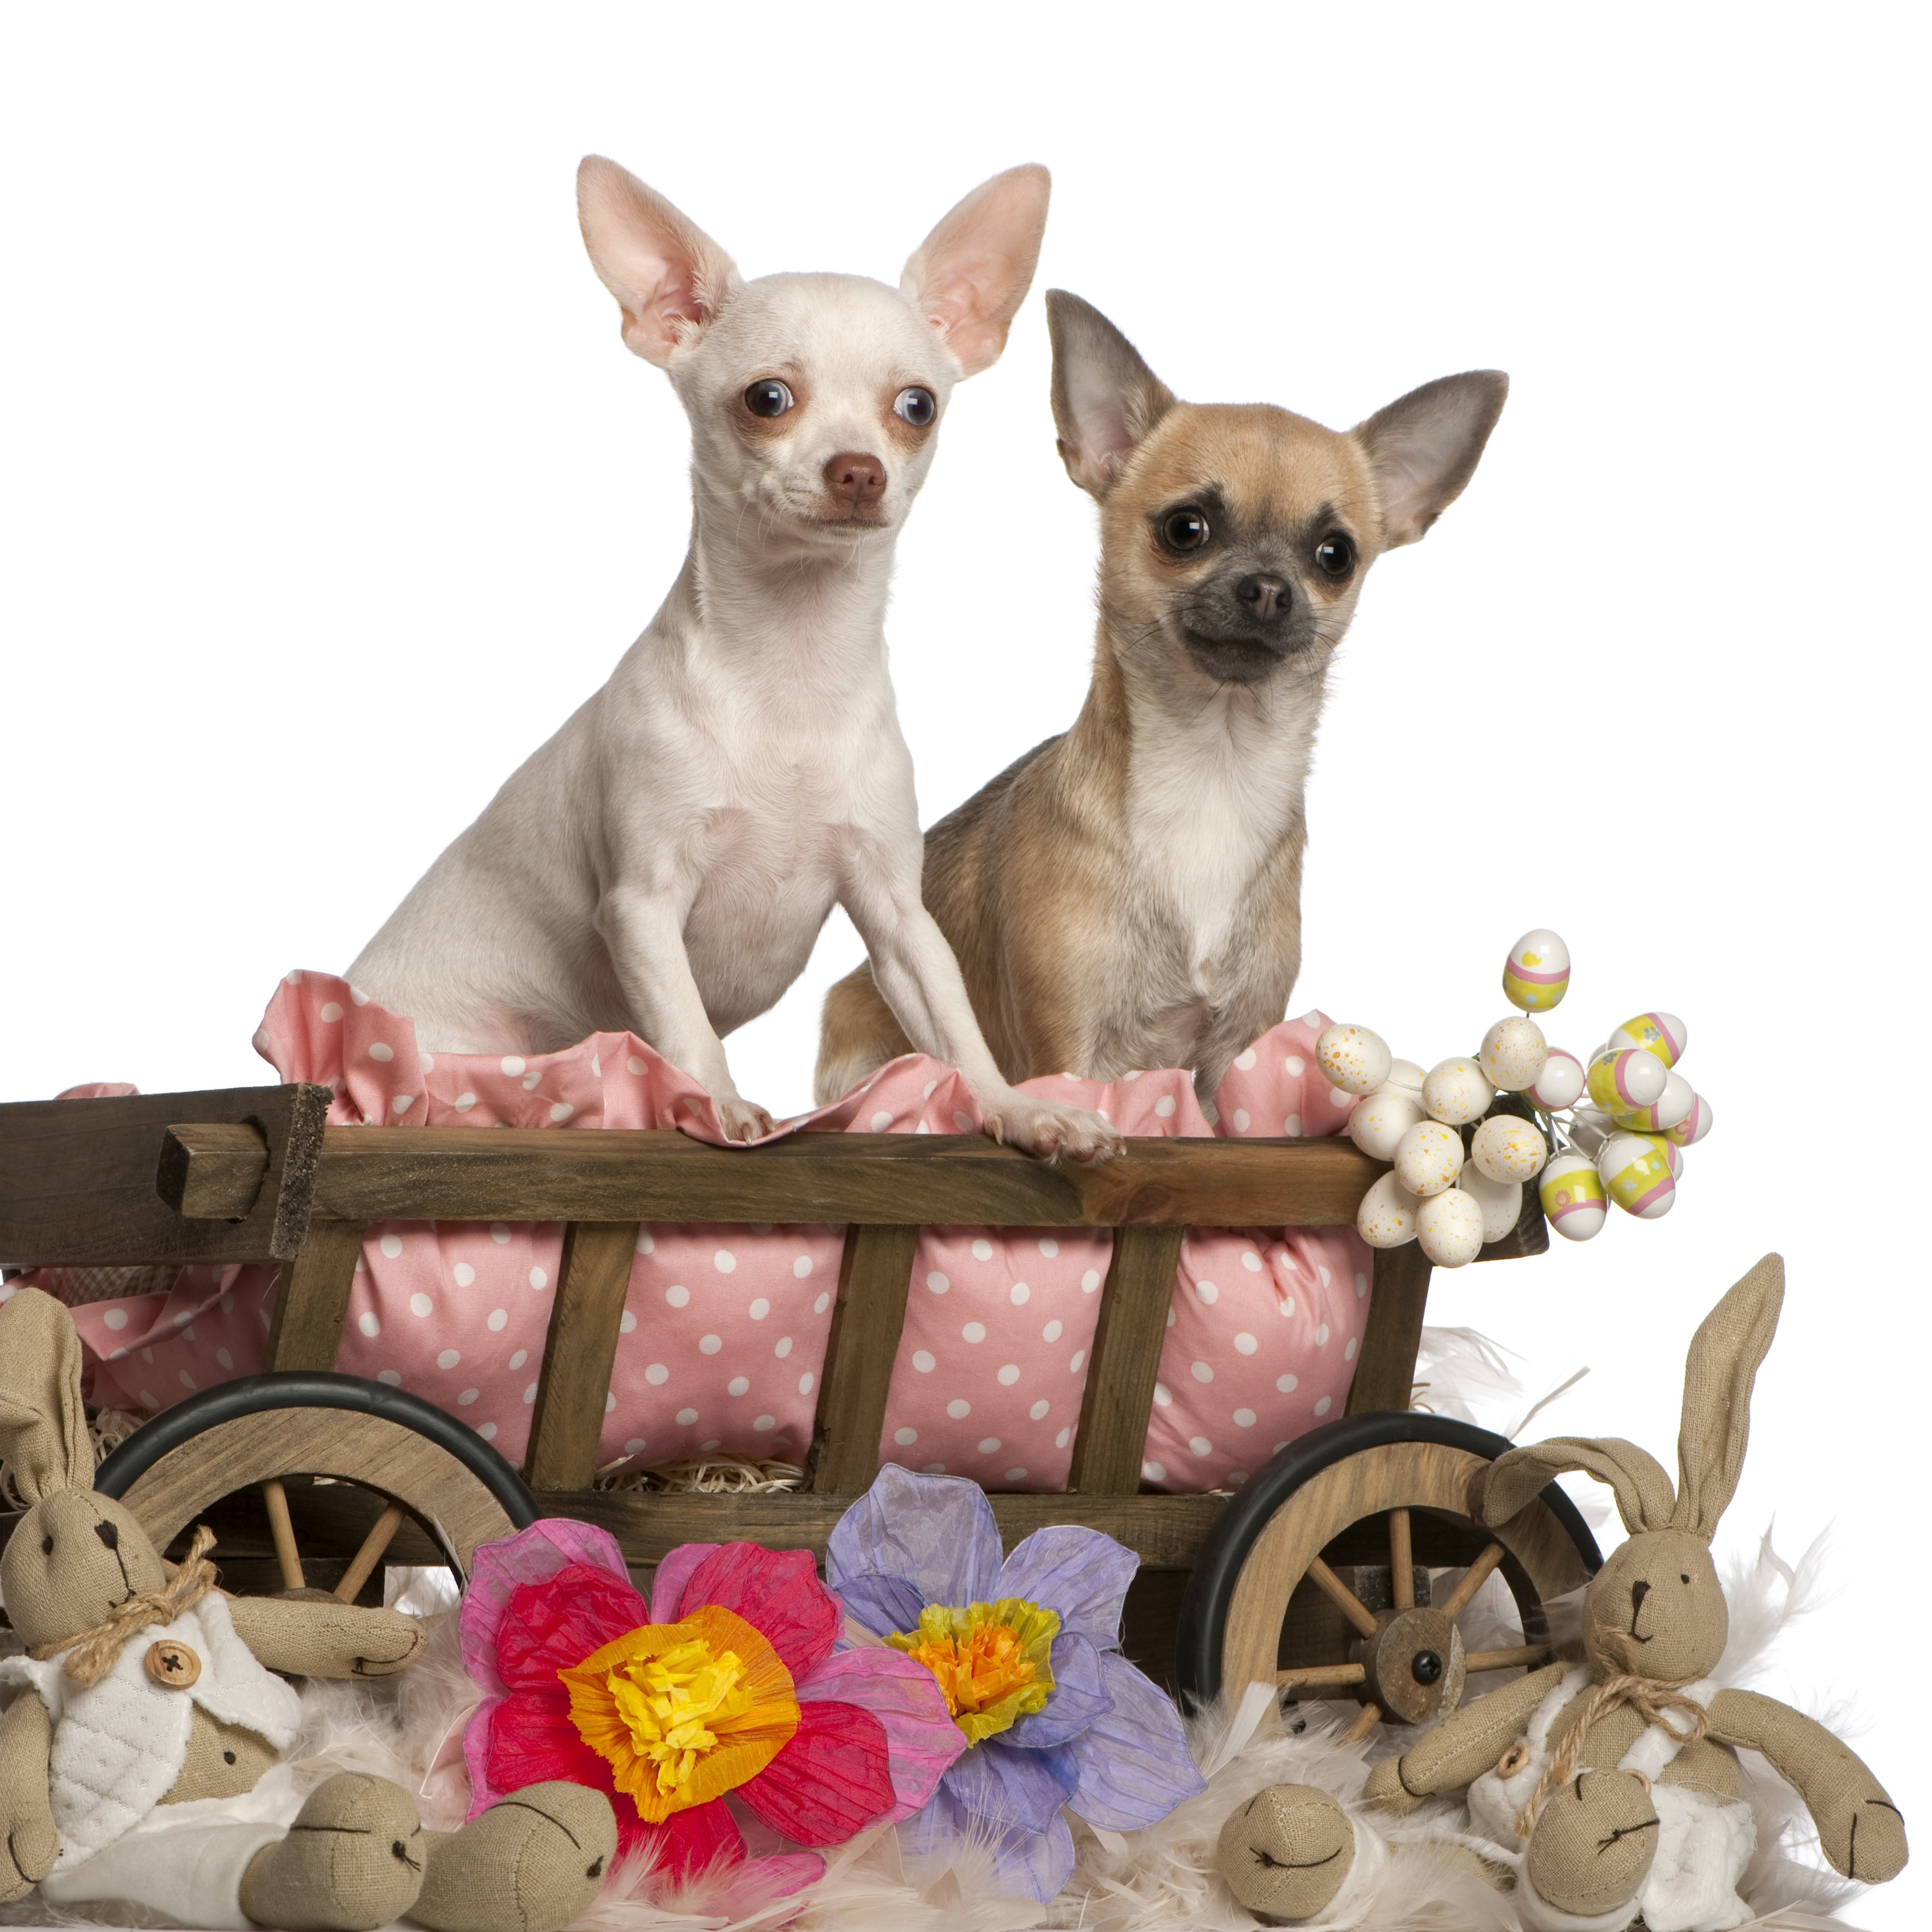 ... Easter dogs? Here are a few more dogs who are ready for Easter